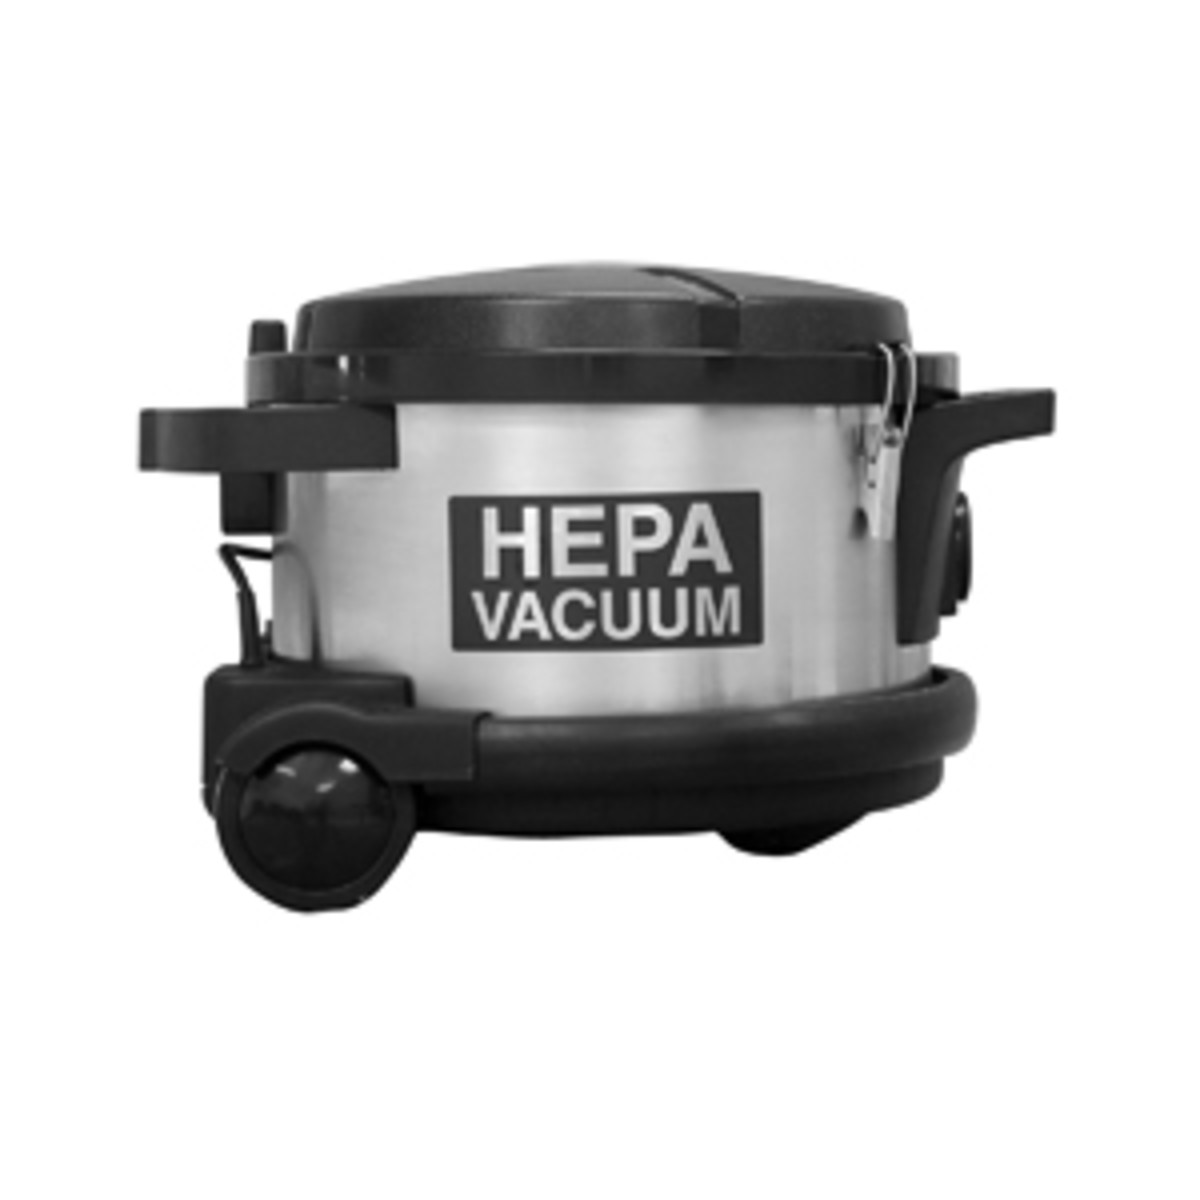 A Hepa Vacum Is Your Best Asset If Your Determined To Rid Your Home Of Dust Mites.